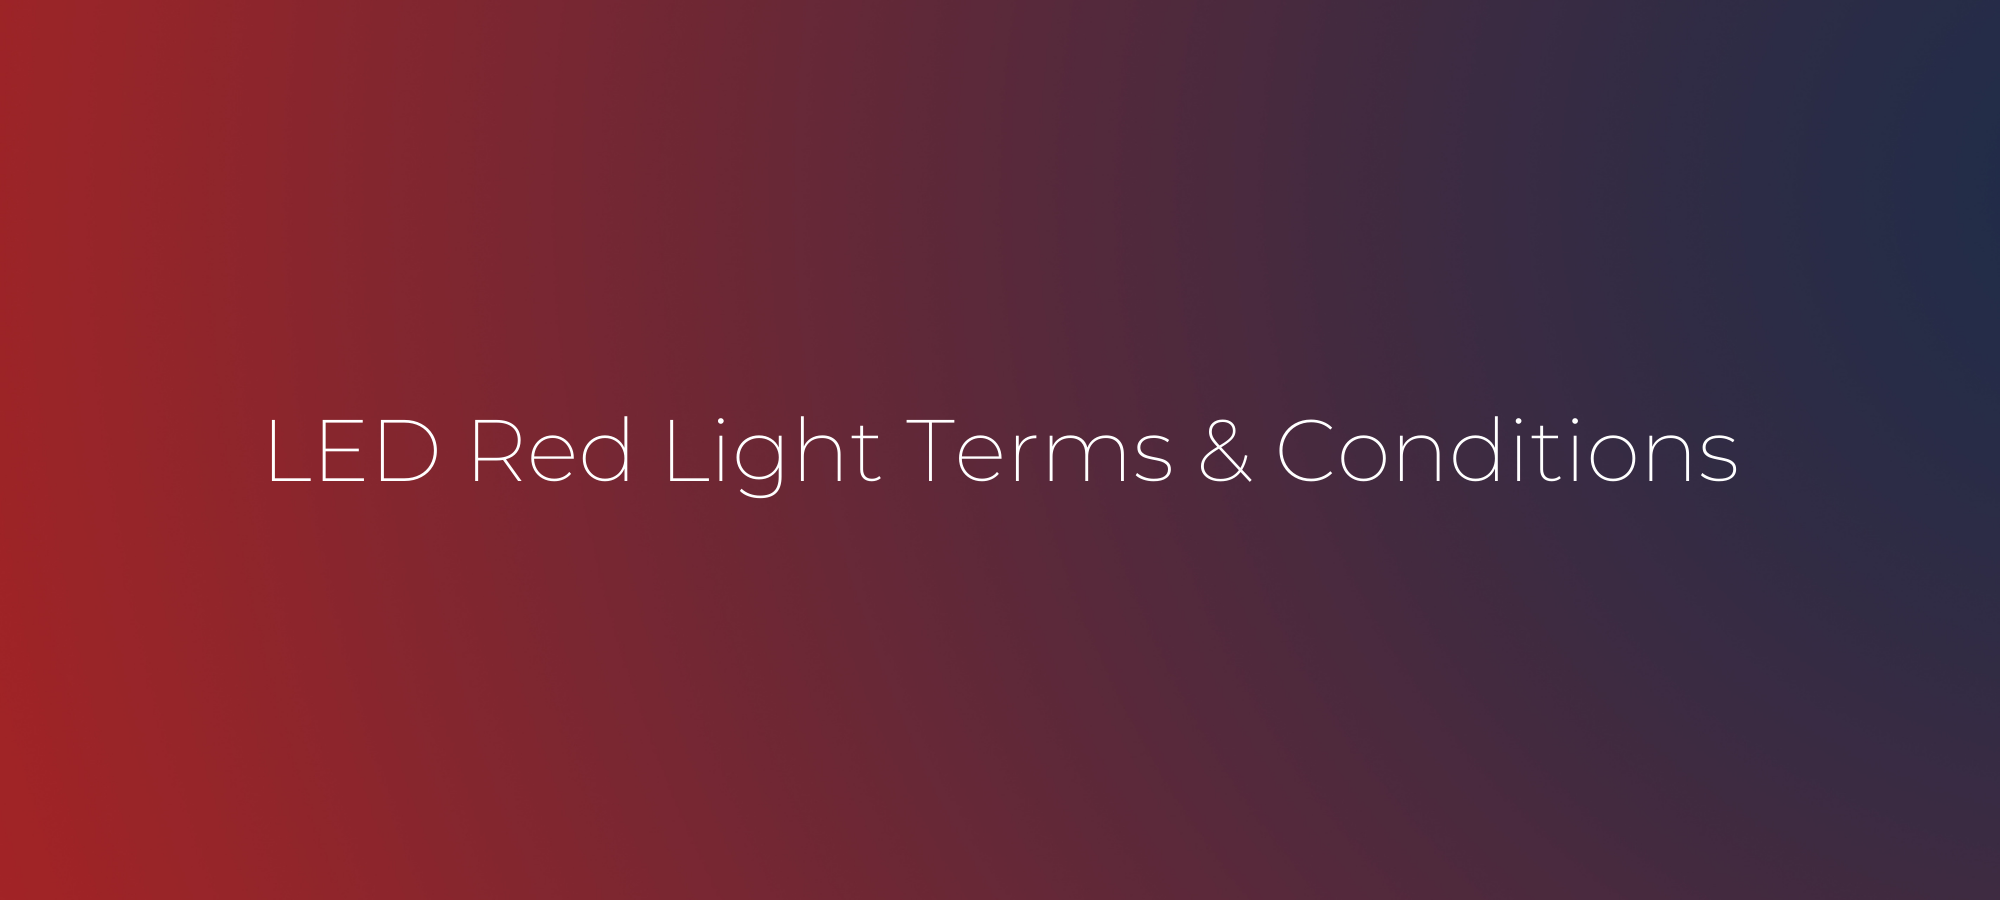 LED Red Light Terms and Conditions